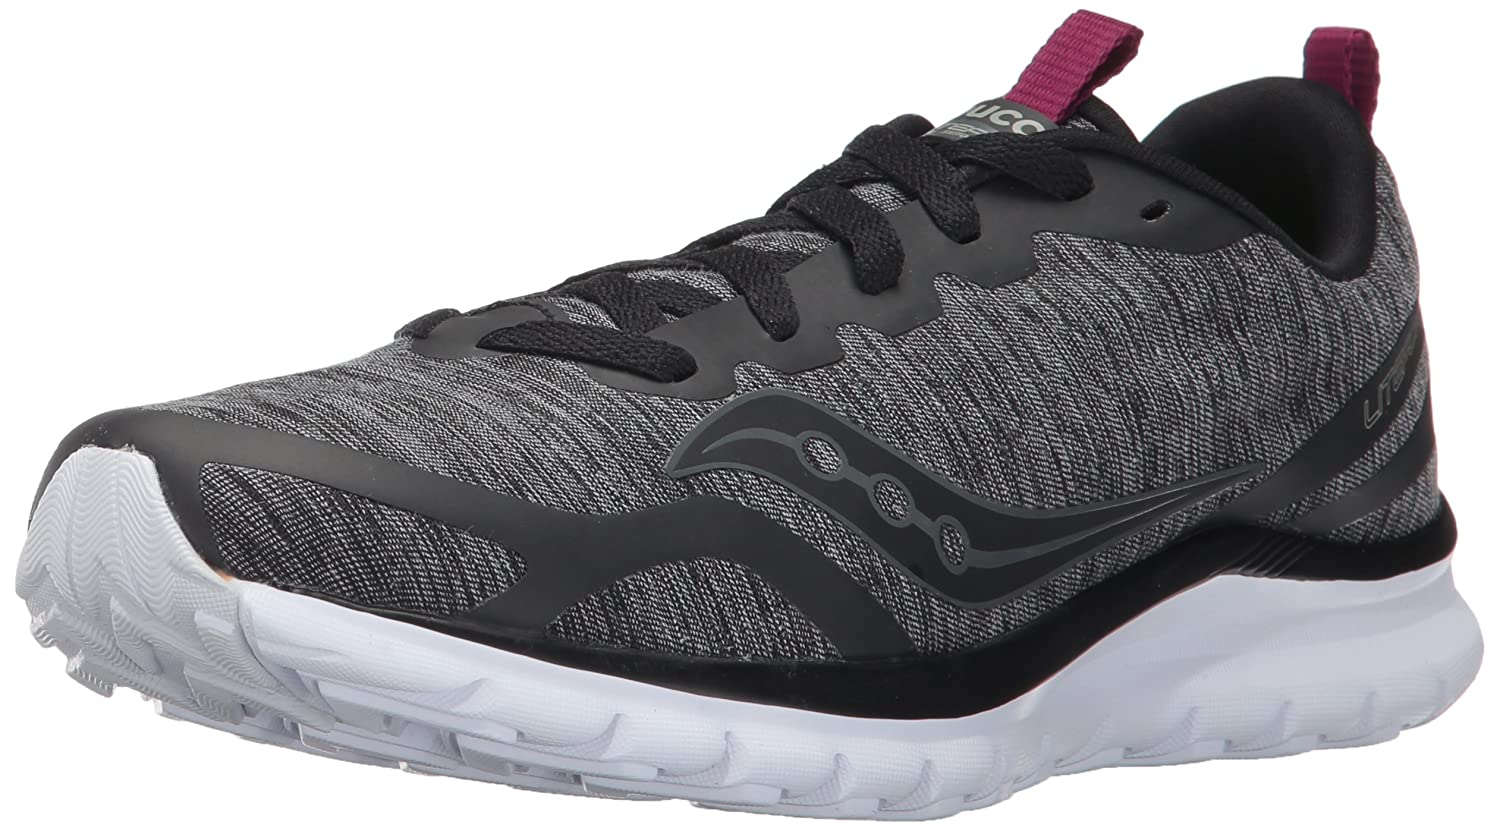 Saucony Women's Feel Sneaker B01N6JHPL4 8 B(M) US|Black